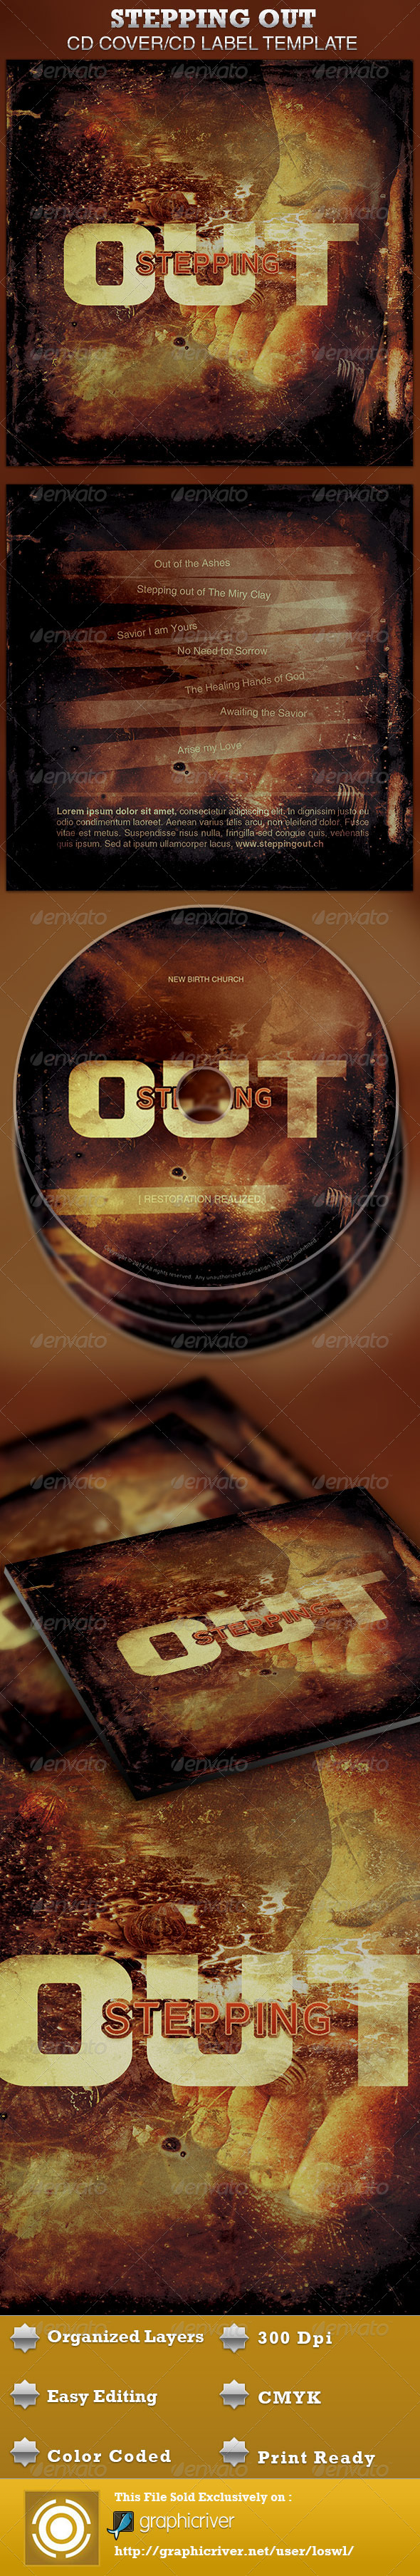 Stepping Out CD Artwork Template - CD & DVD artwork Print Templates